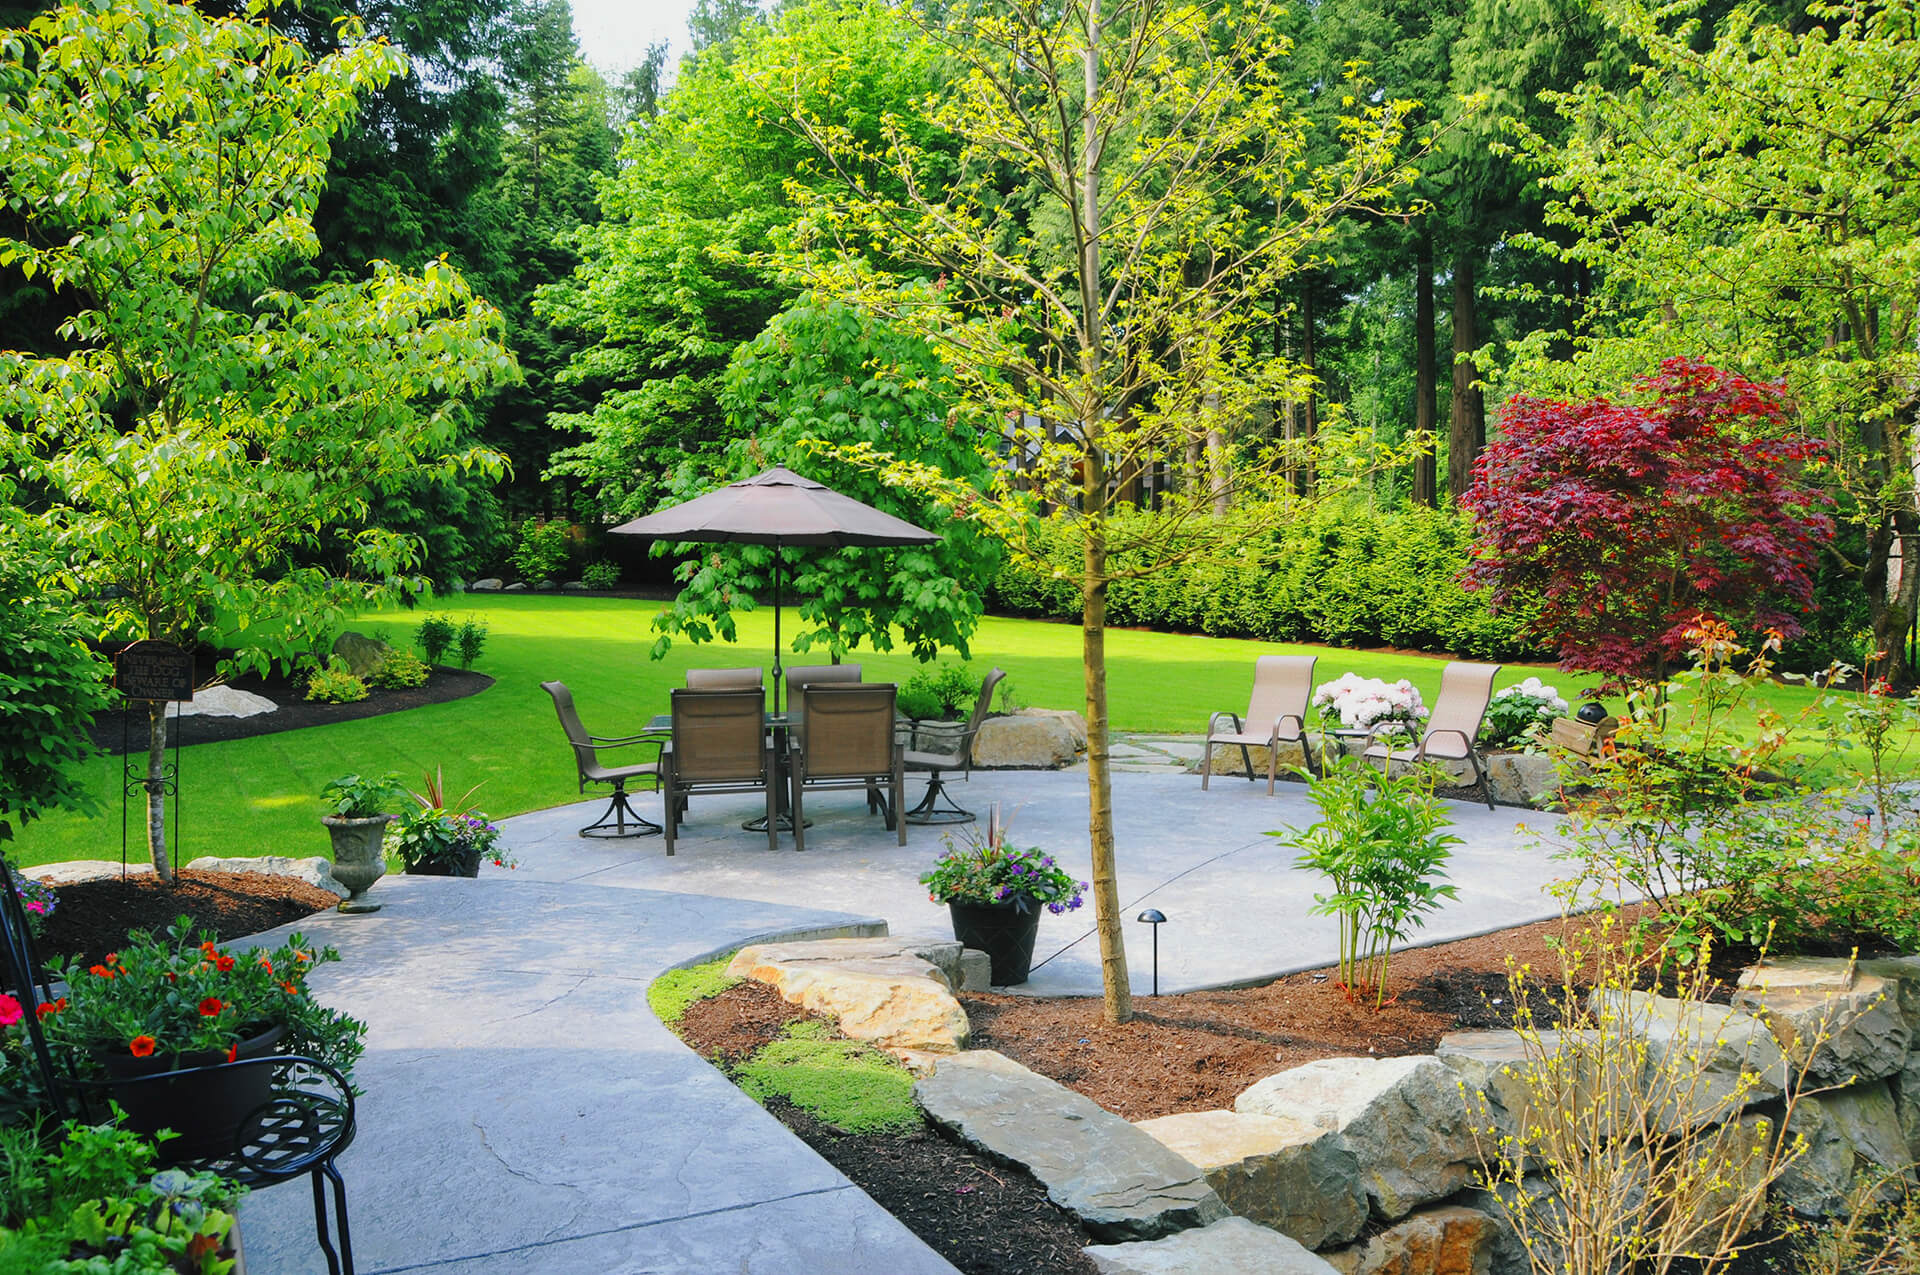 landscaping design Calgary - enhance experience